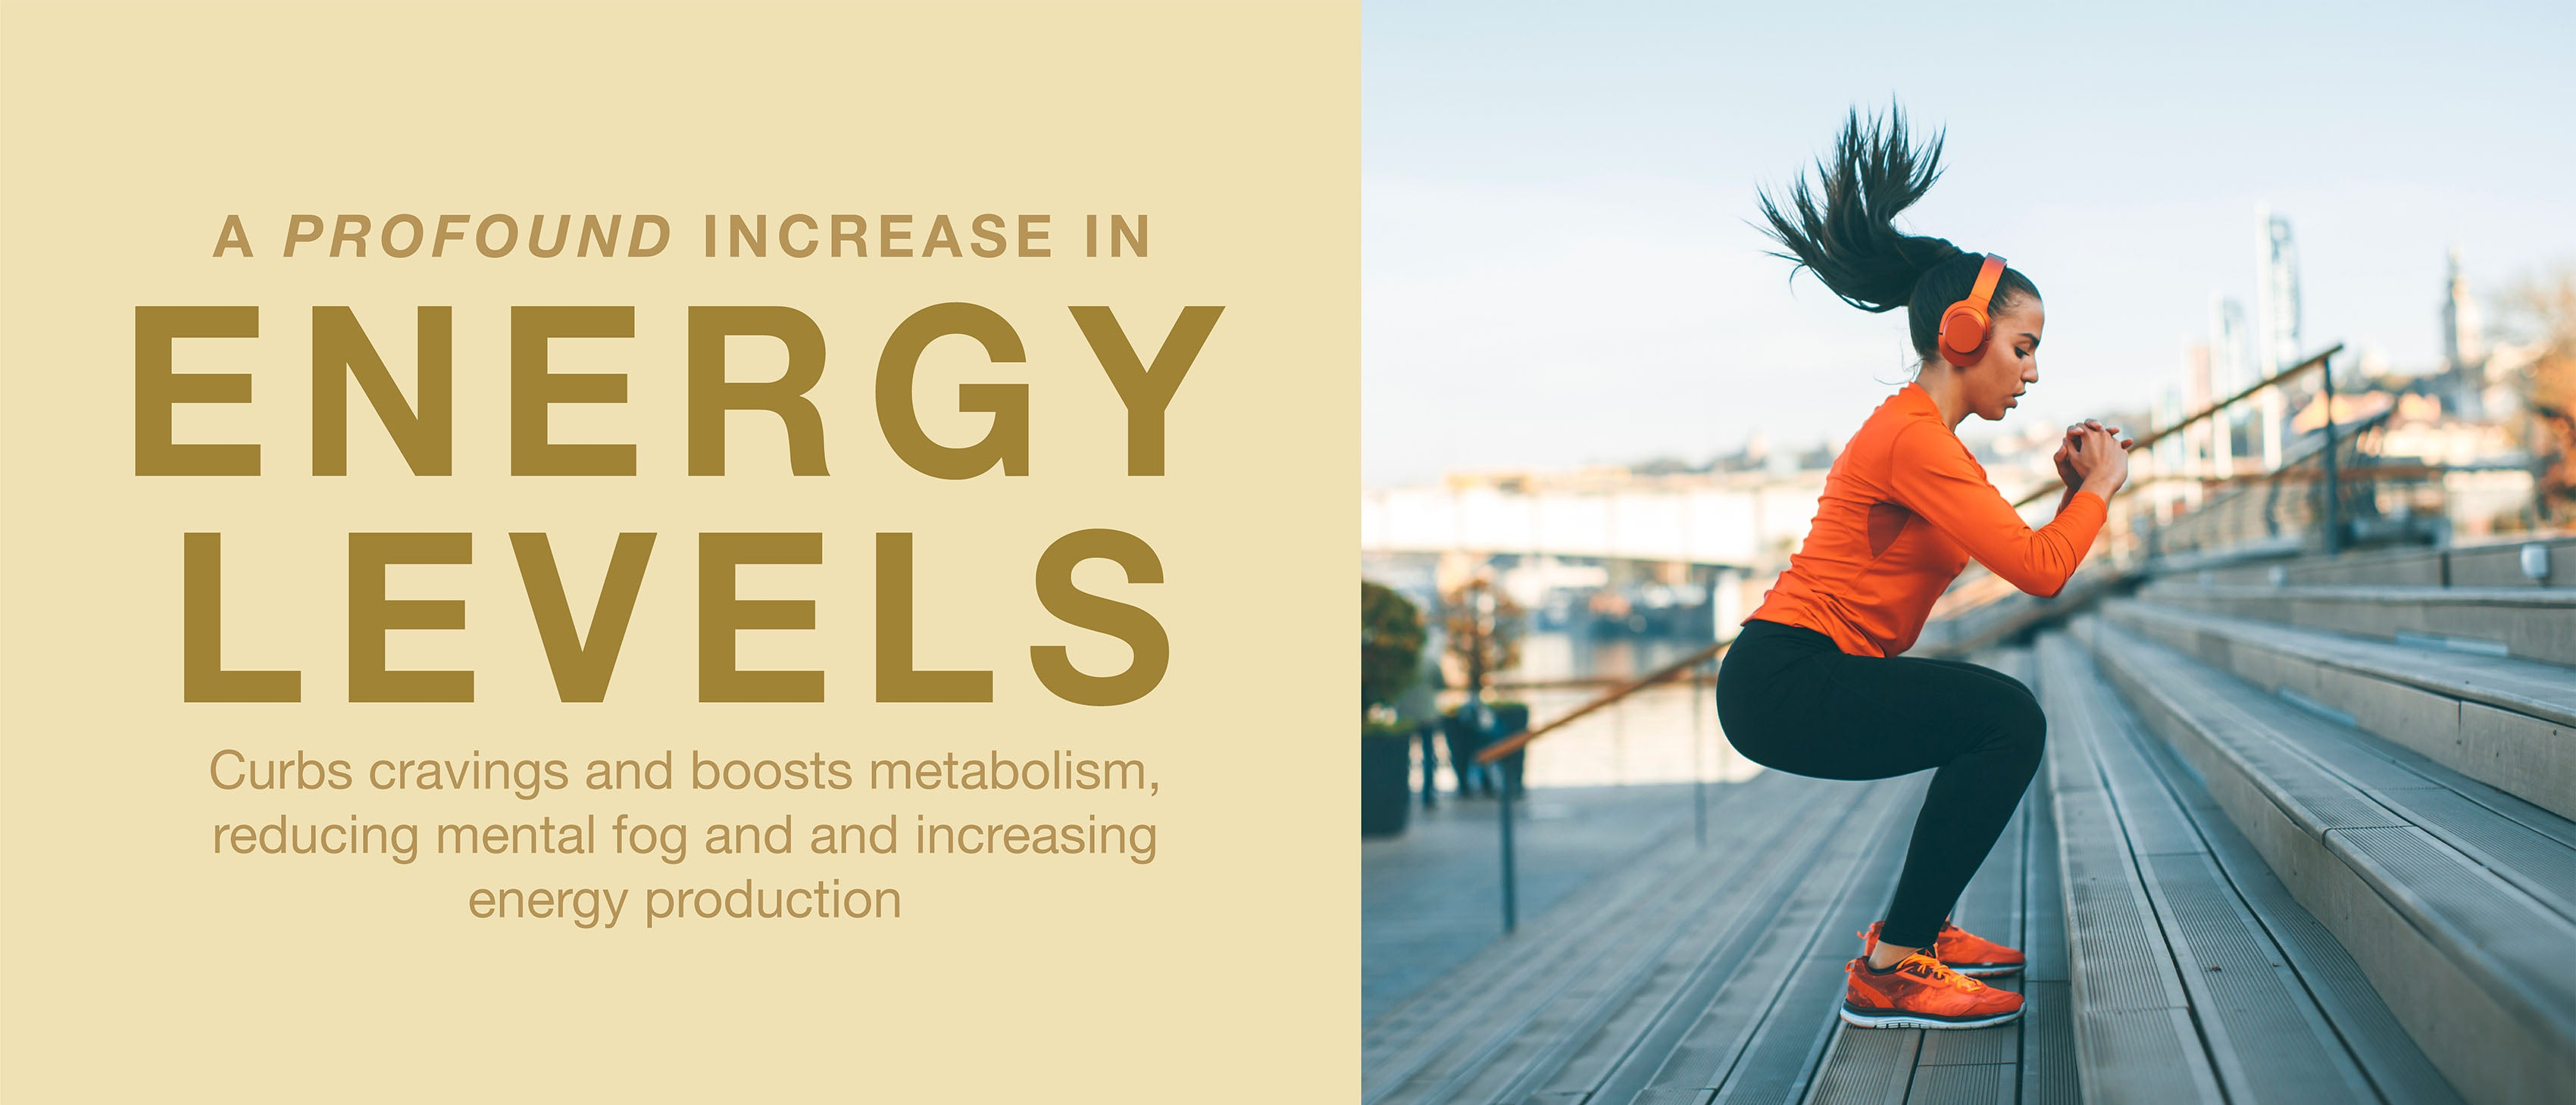 A profound increase in energy levels, curbing cravings and boosting metabolism, while helping with mental fog and energy production.